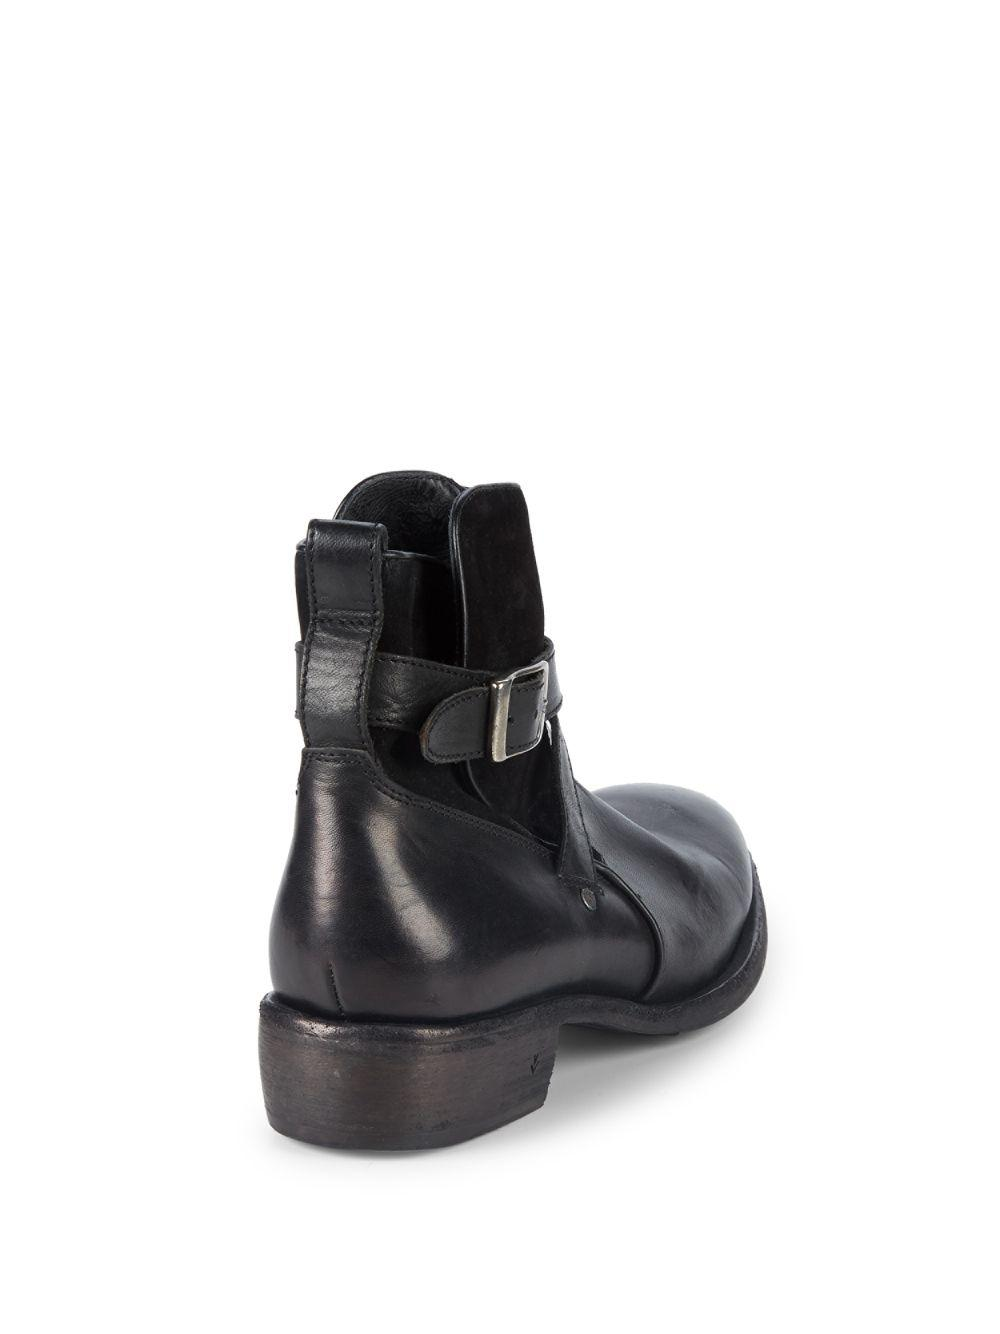 John Varvatos Keith Strap Leather Boots in Black